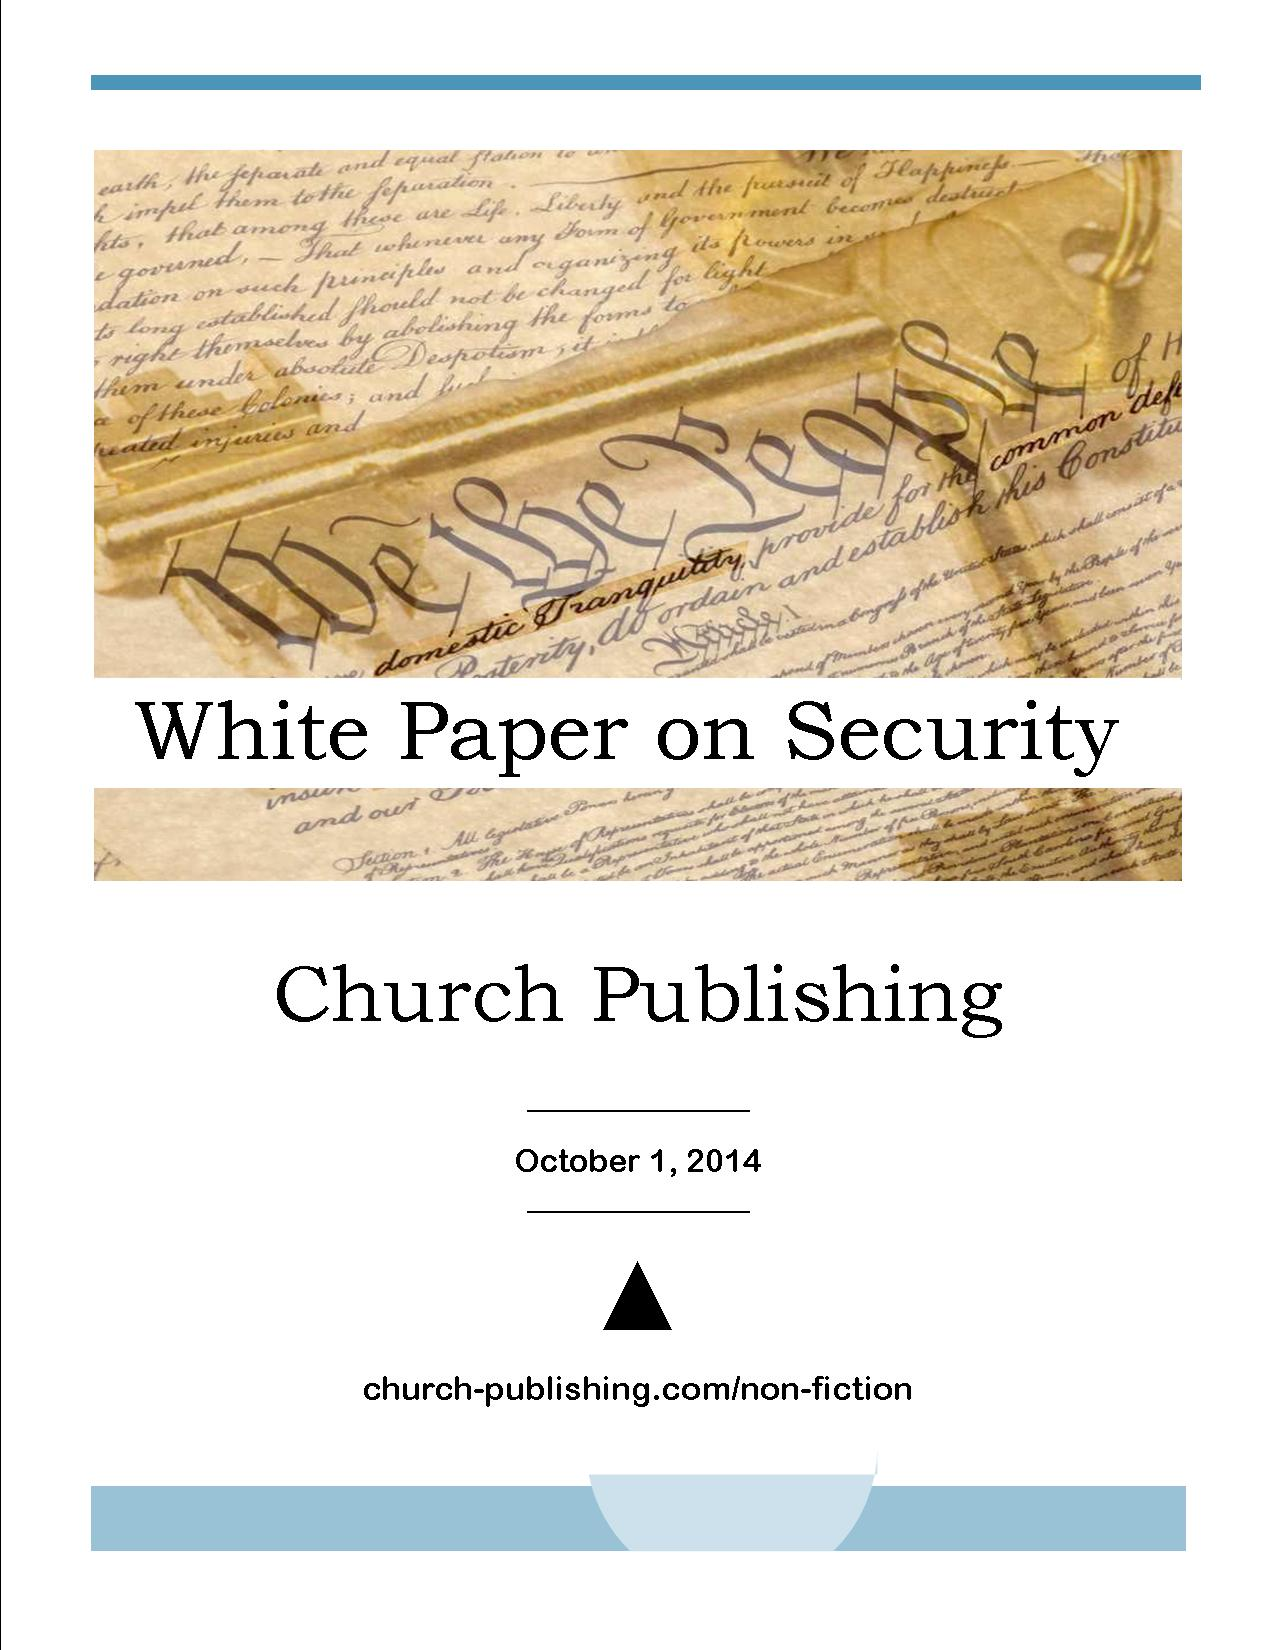 """White Paper on Security published by ▲Church 10/14 answers """"What is Security?"""""""